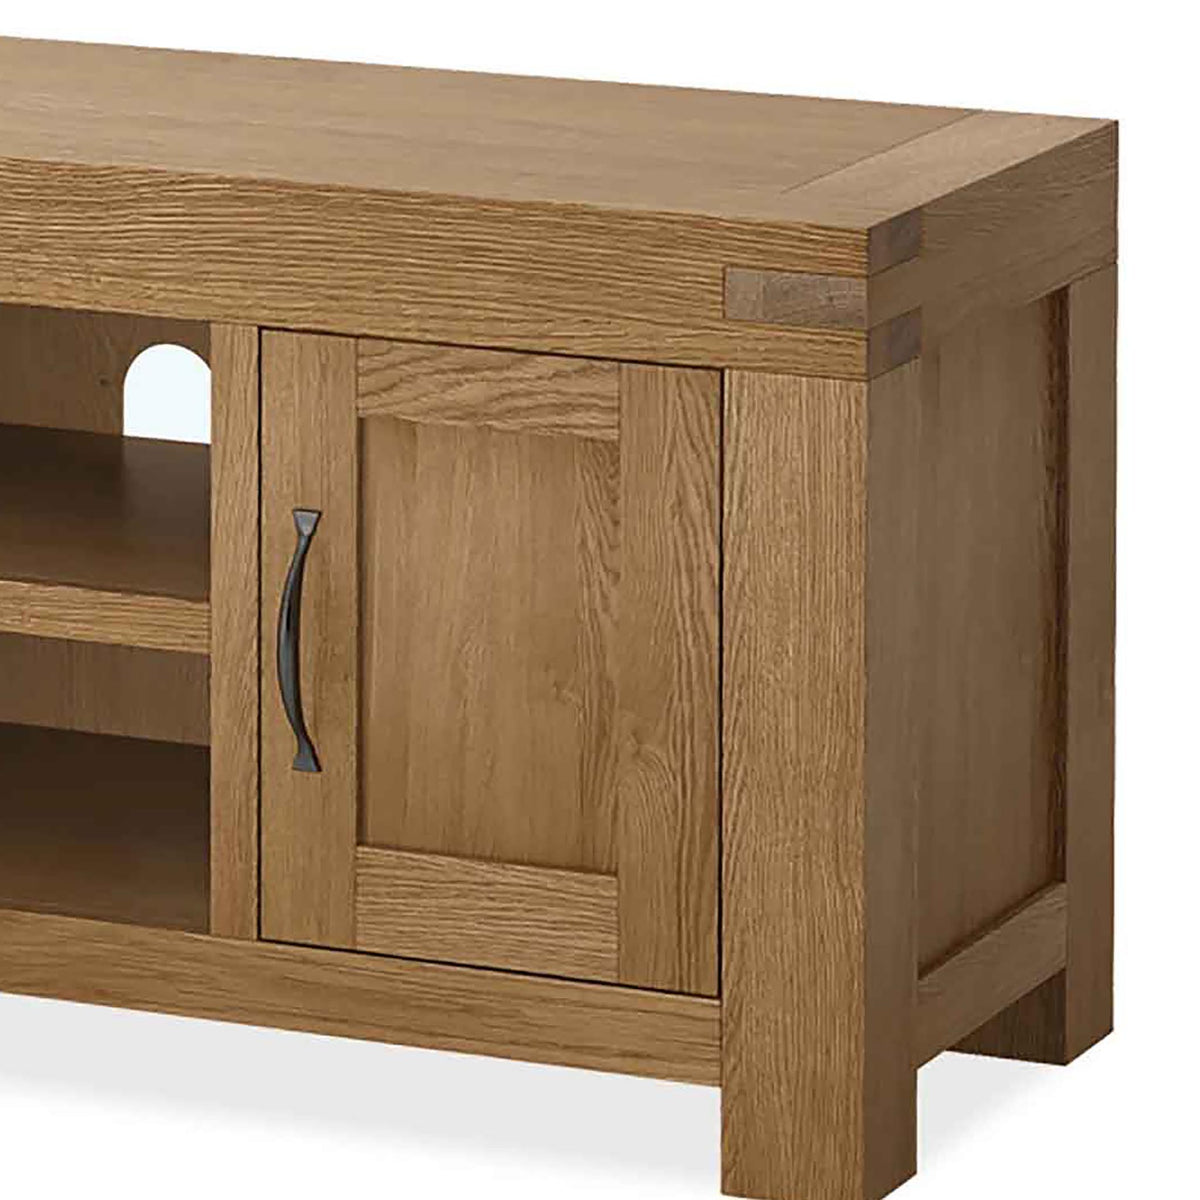 Abbey Grande 125cm Oak TV Stand - Close Up of Cupboard